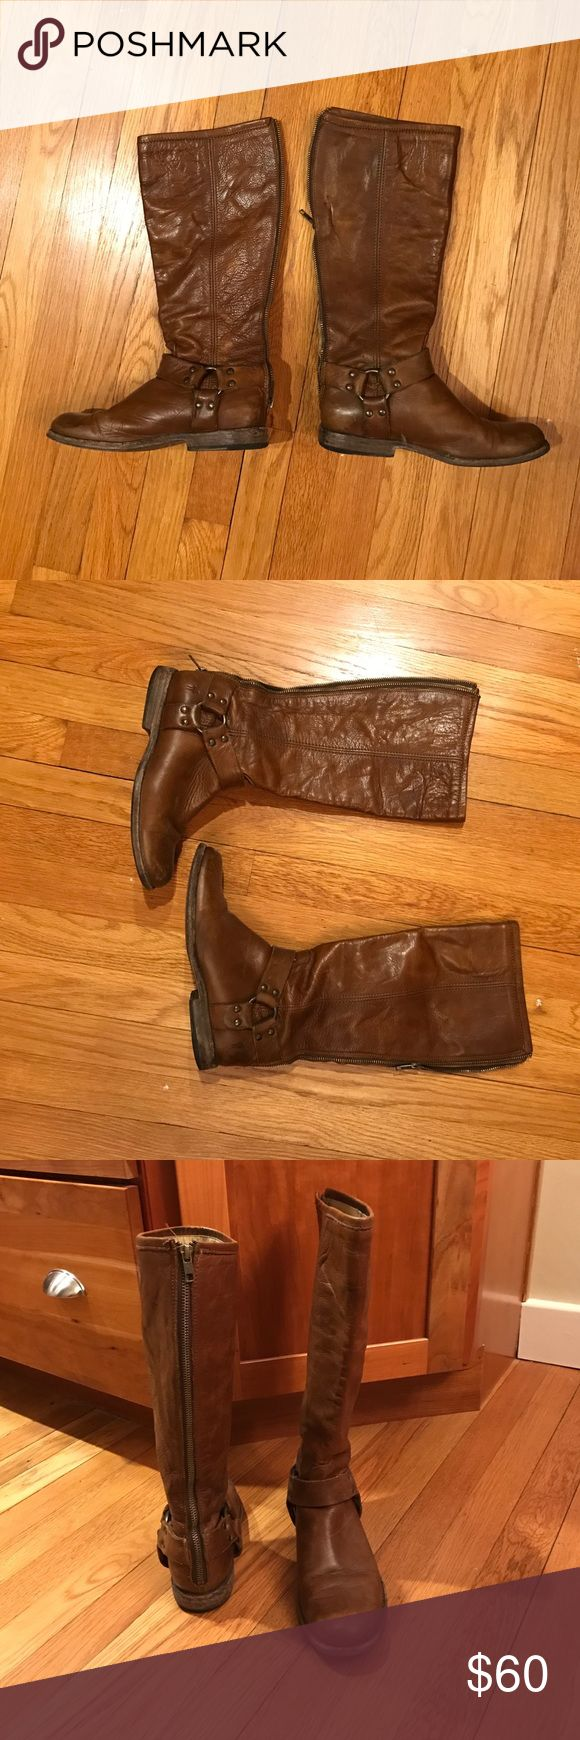 Frye Phillip Harness Boot size 7 Very cute boots! Zipper on the left boot is broken but definitely could be fixed. Don't fit me anymore or else I would've gone right to the cobbler. Frye Shoes